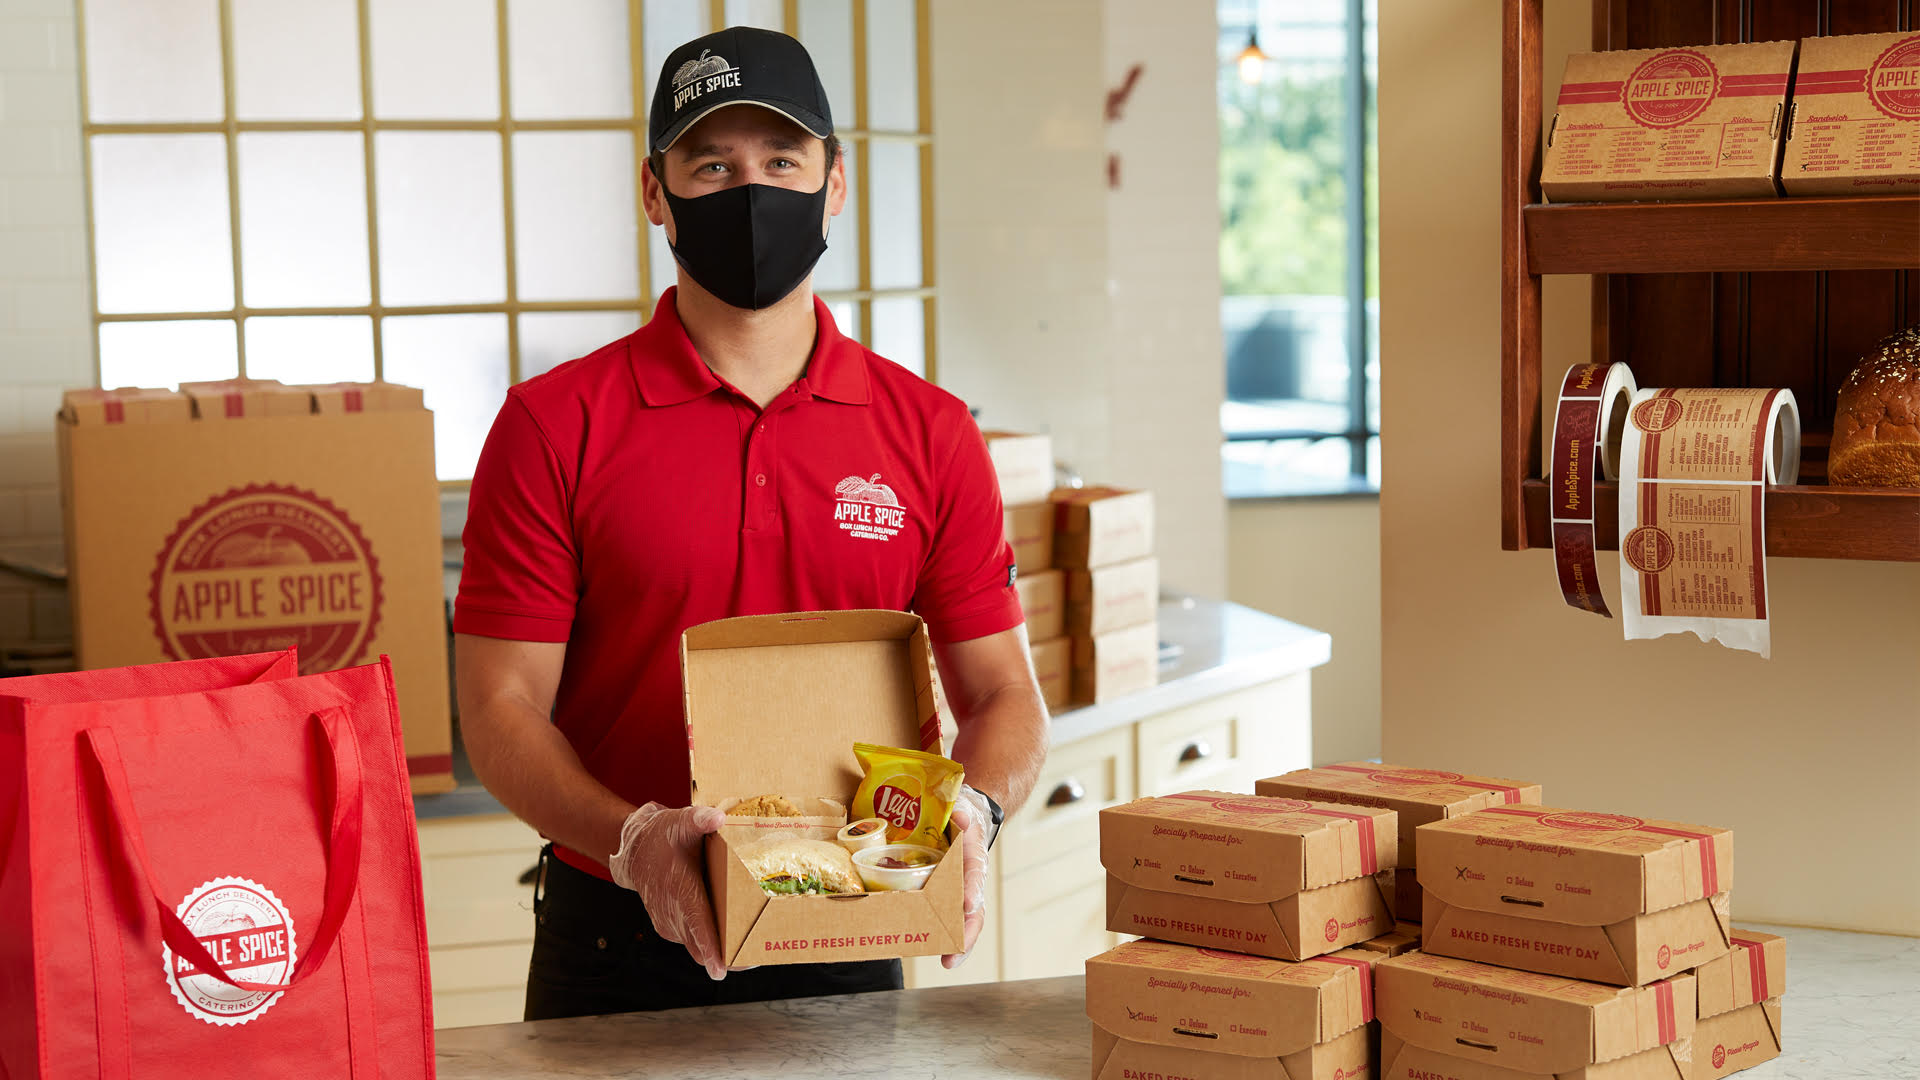 Apple Spice Staff holding Box Lunch Catering